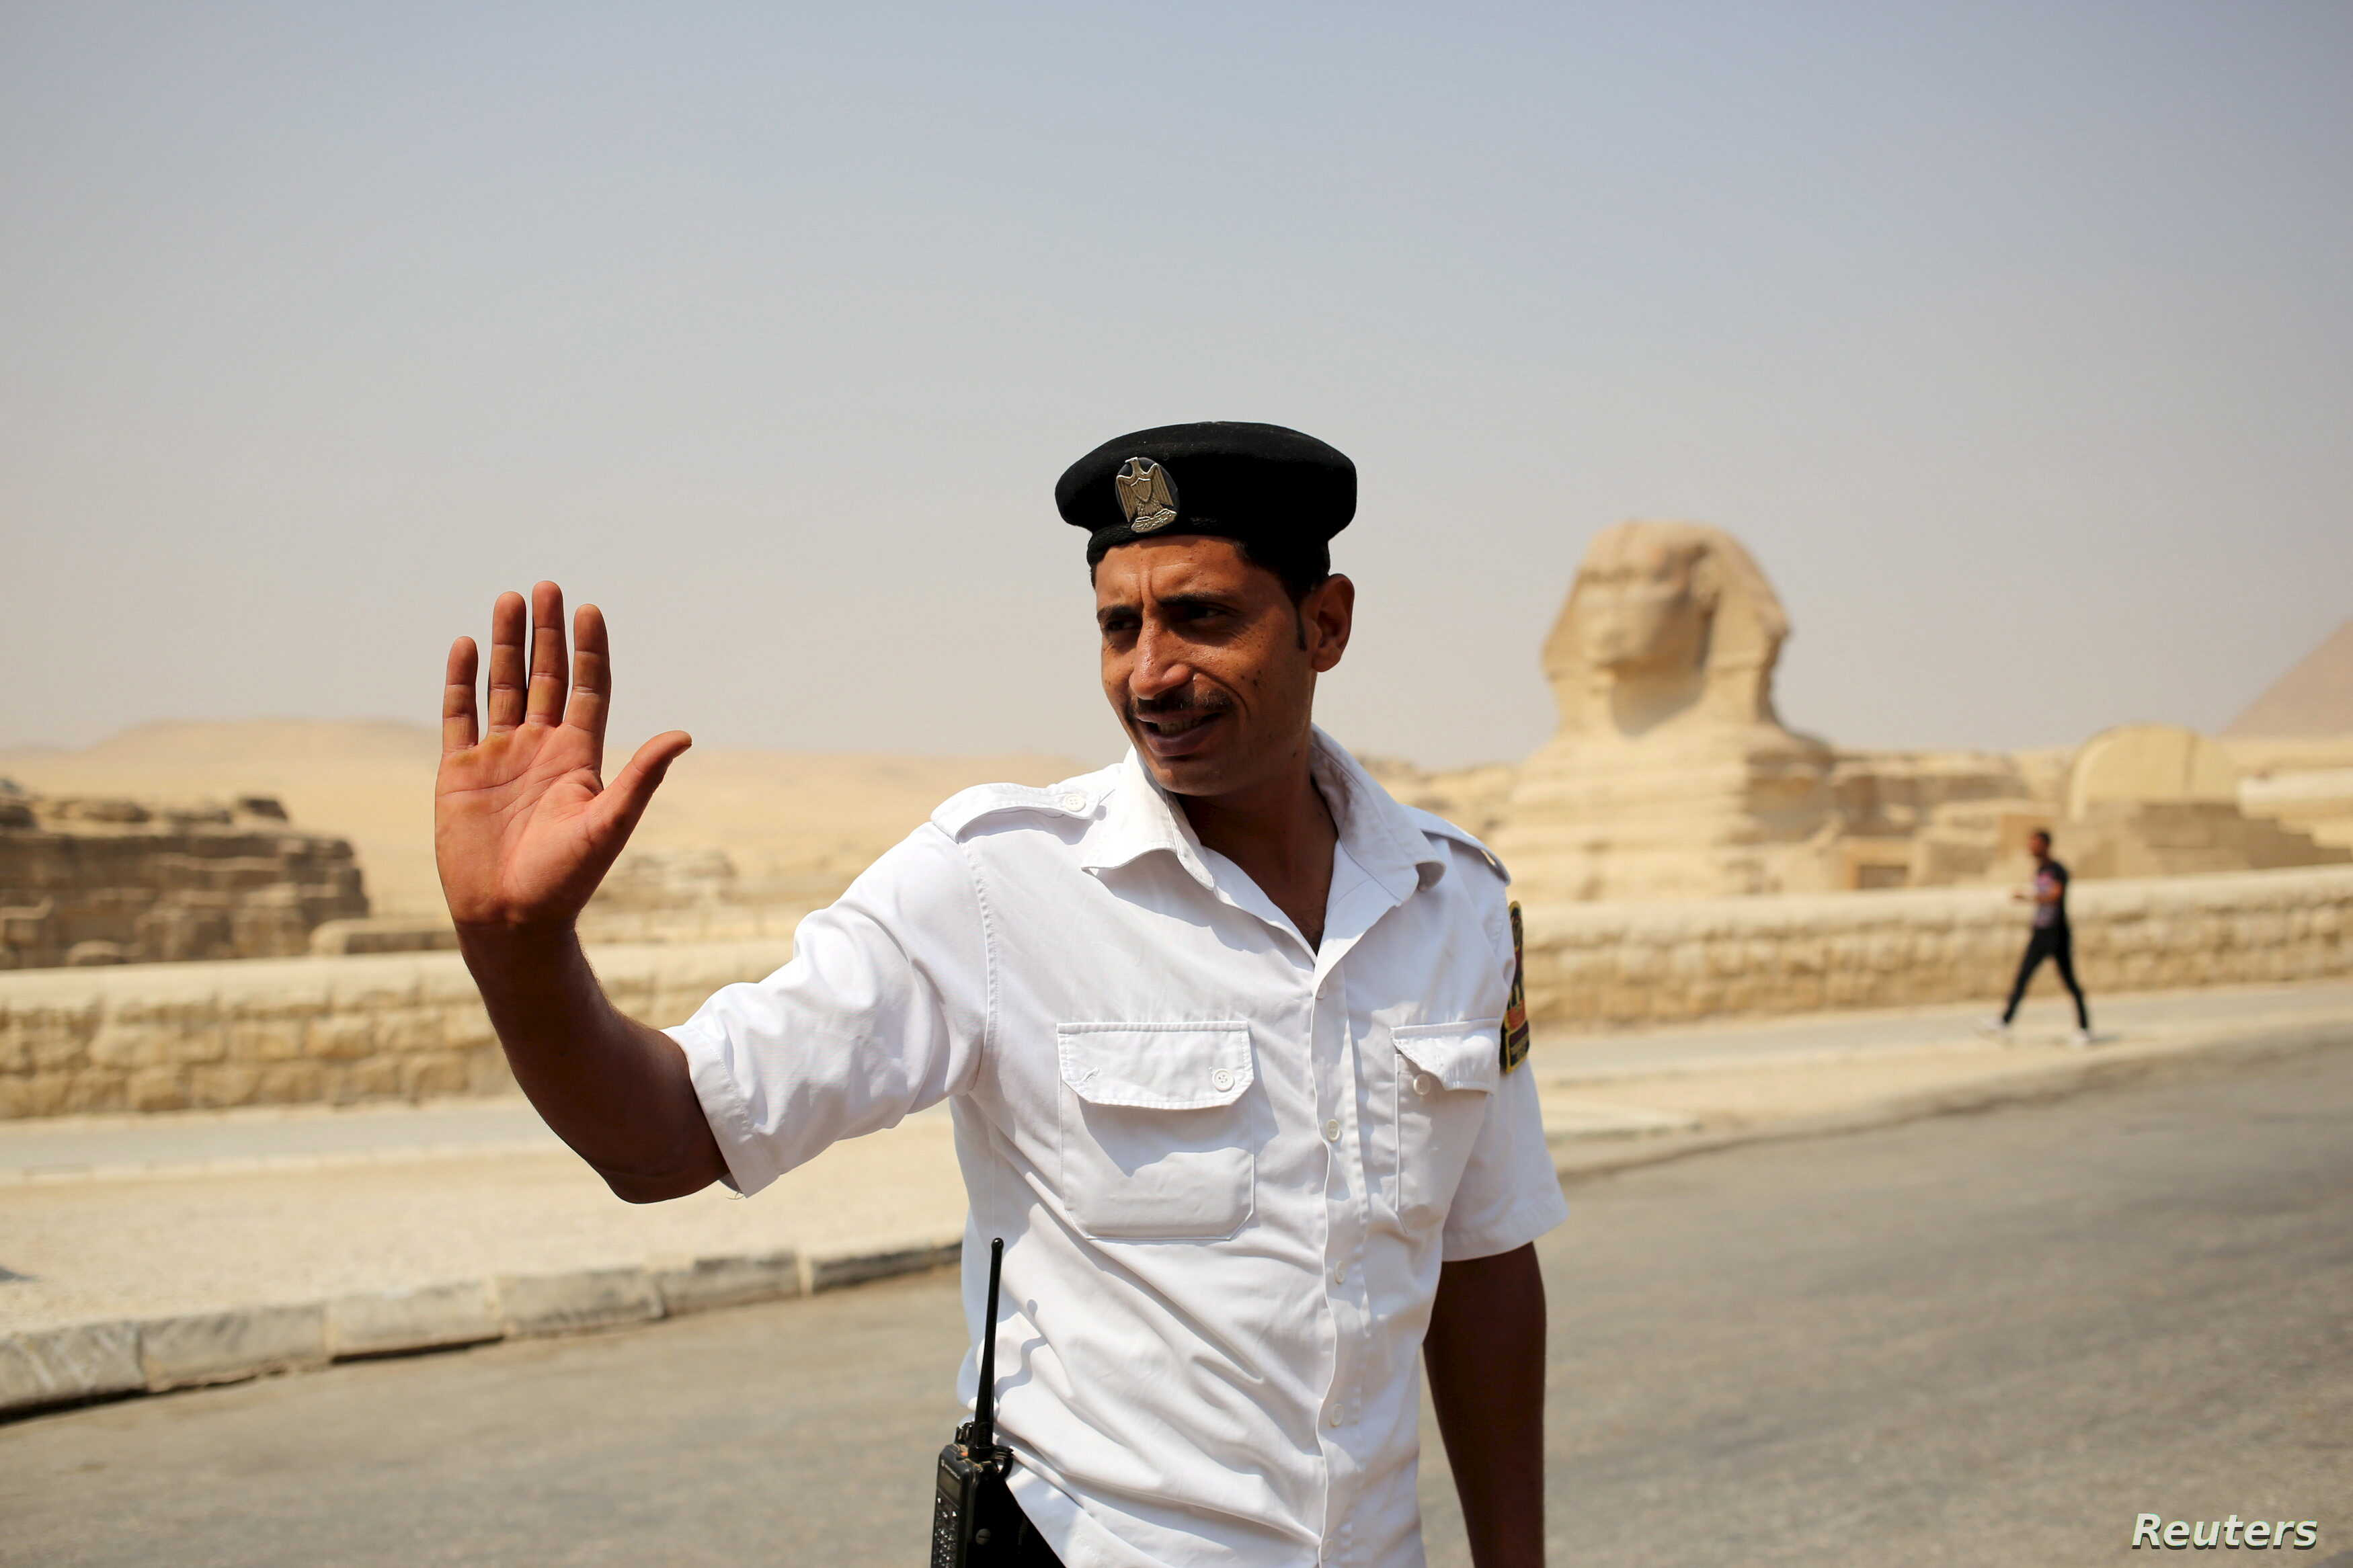 FILE - A policeman gestures to people as he stands guard near the Sphinx, near the pyramids plateau, Egypt, June 11, 2015.